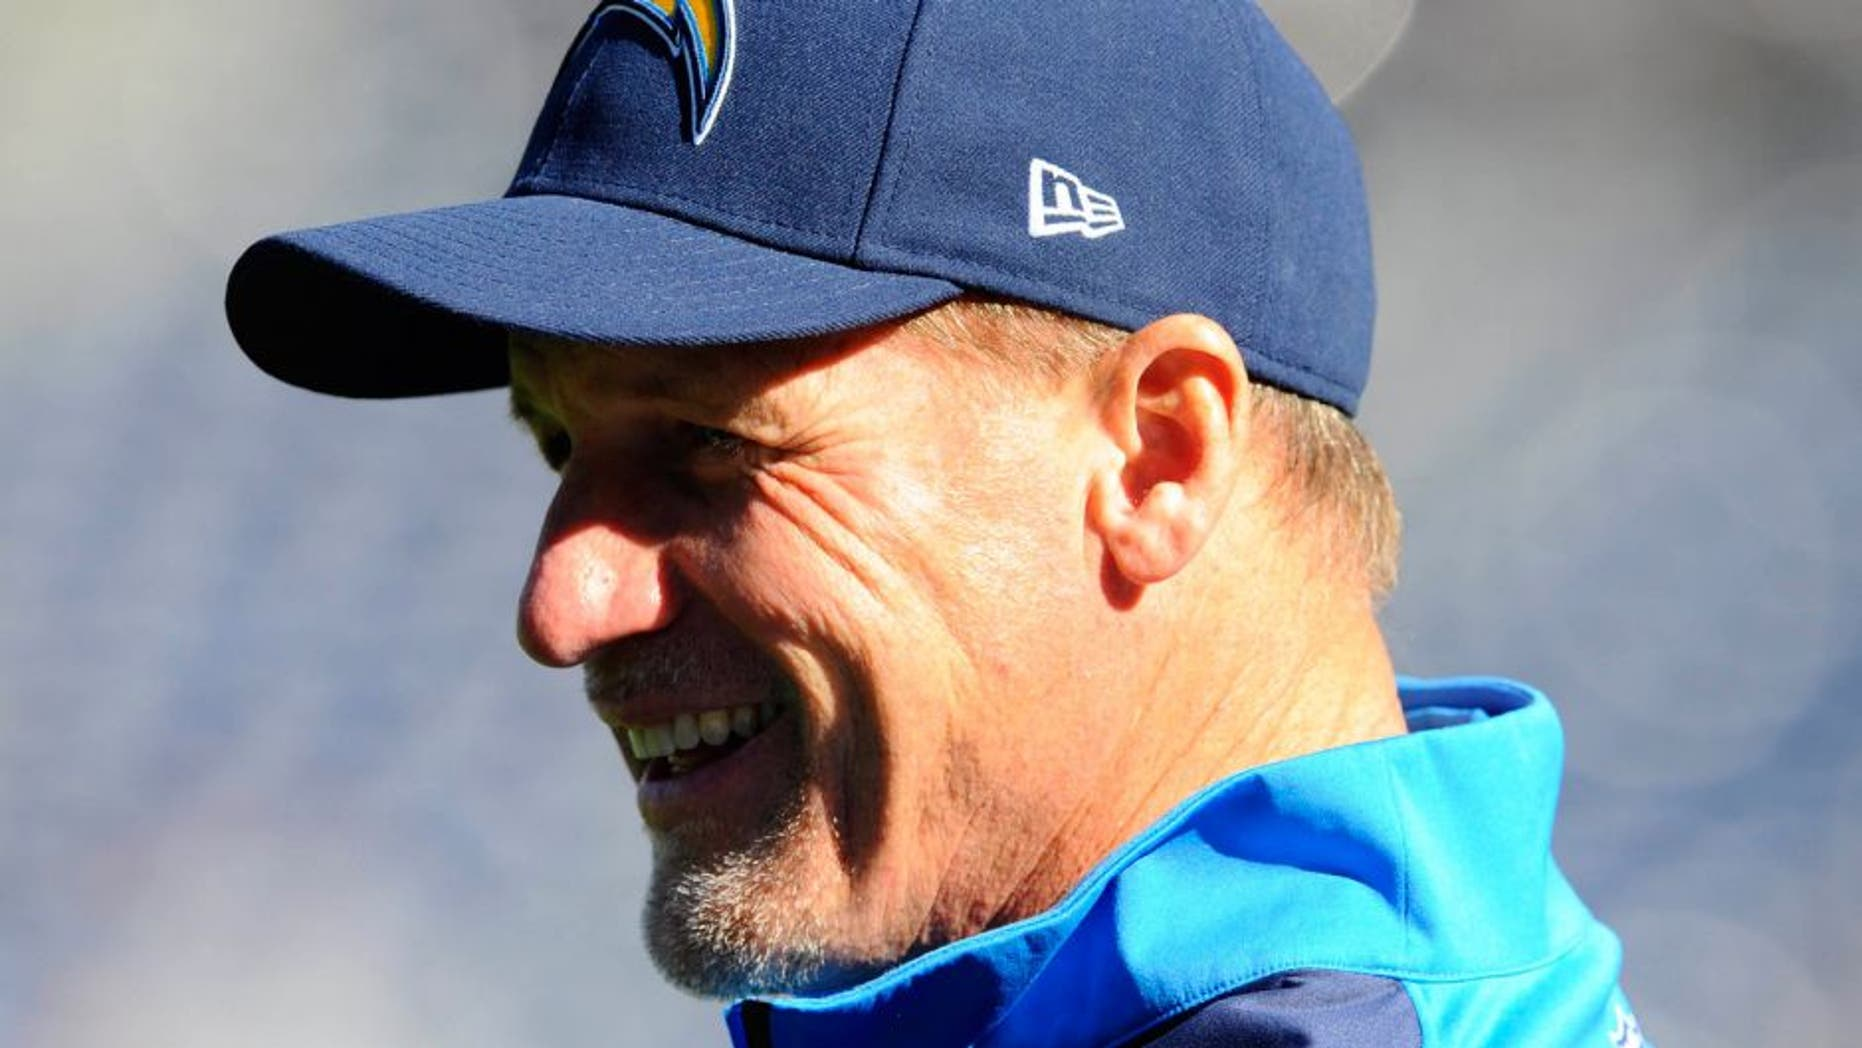 Dec 22, 2013; San Diego, CA, USA; San Diego Chargers offensive coordinator Ken Whisenhunt prior to the game against the Oakland Raiders at Qualcomm Stadium. Mandatory Credit: Christopher Hanewinckel-USA TODAY Sports